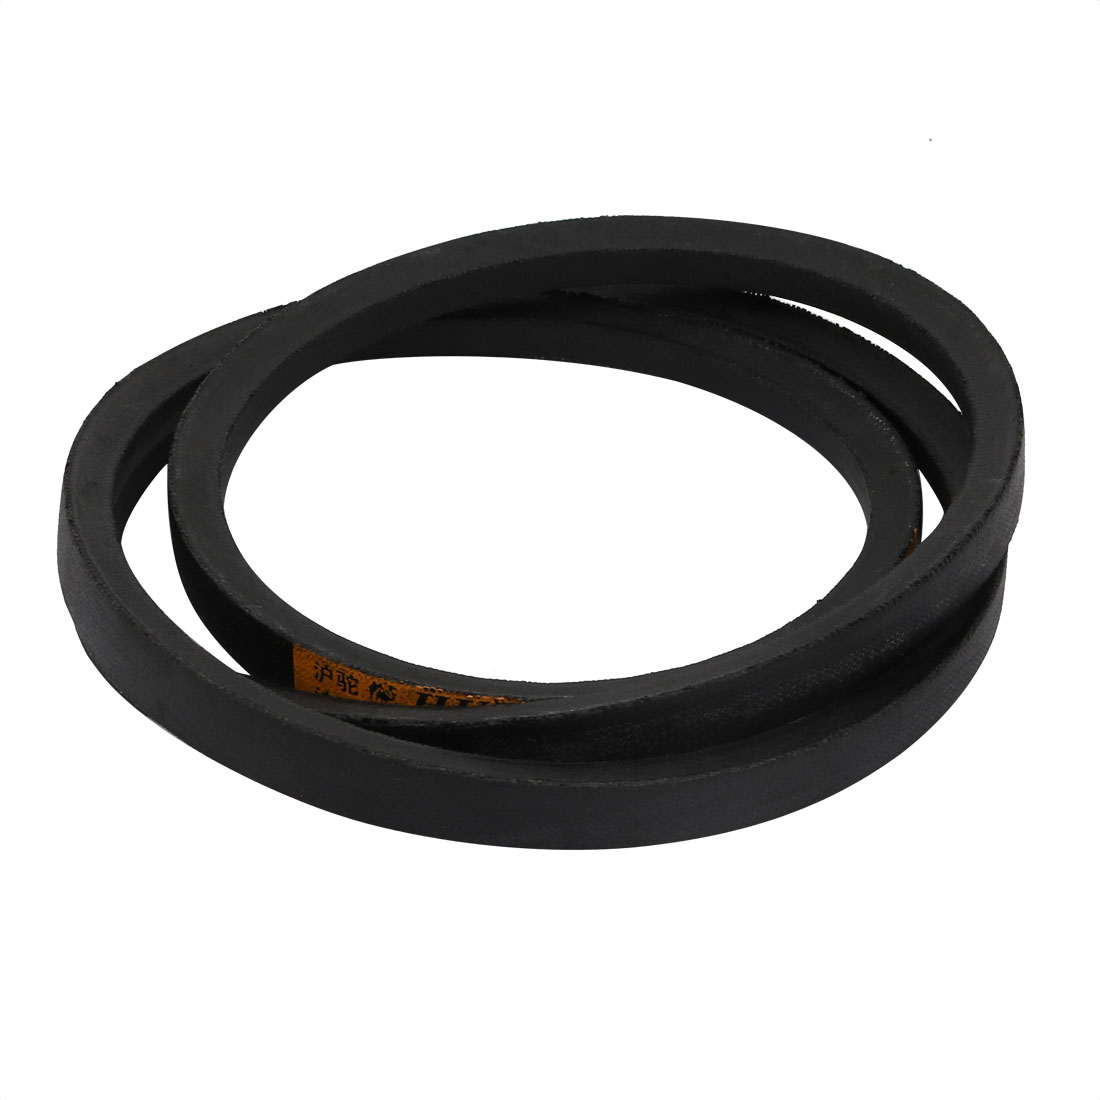 A1321 13mm Wide 8mm Thickness Rubber High Strength Transmission Drive V-Belt